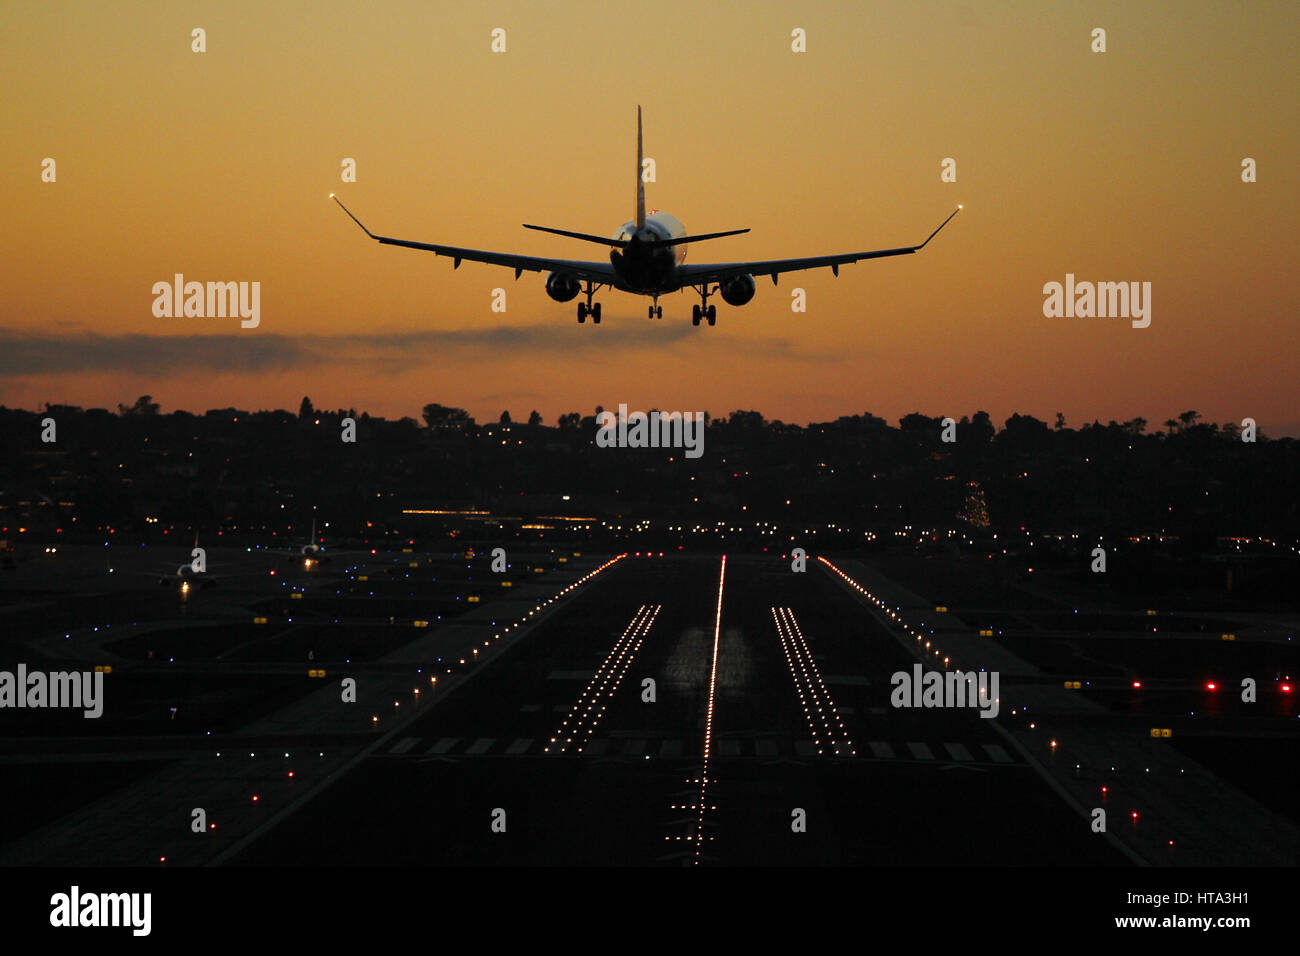 December 26, 2016 - San Diego, CA, USA - December 26, 2016 - San Diego, California, USA- A commercial airlines lands - Stock Image